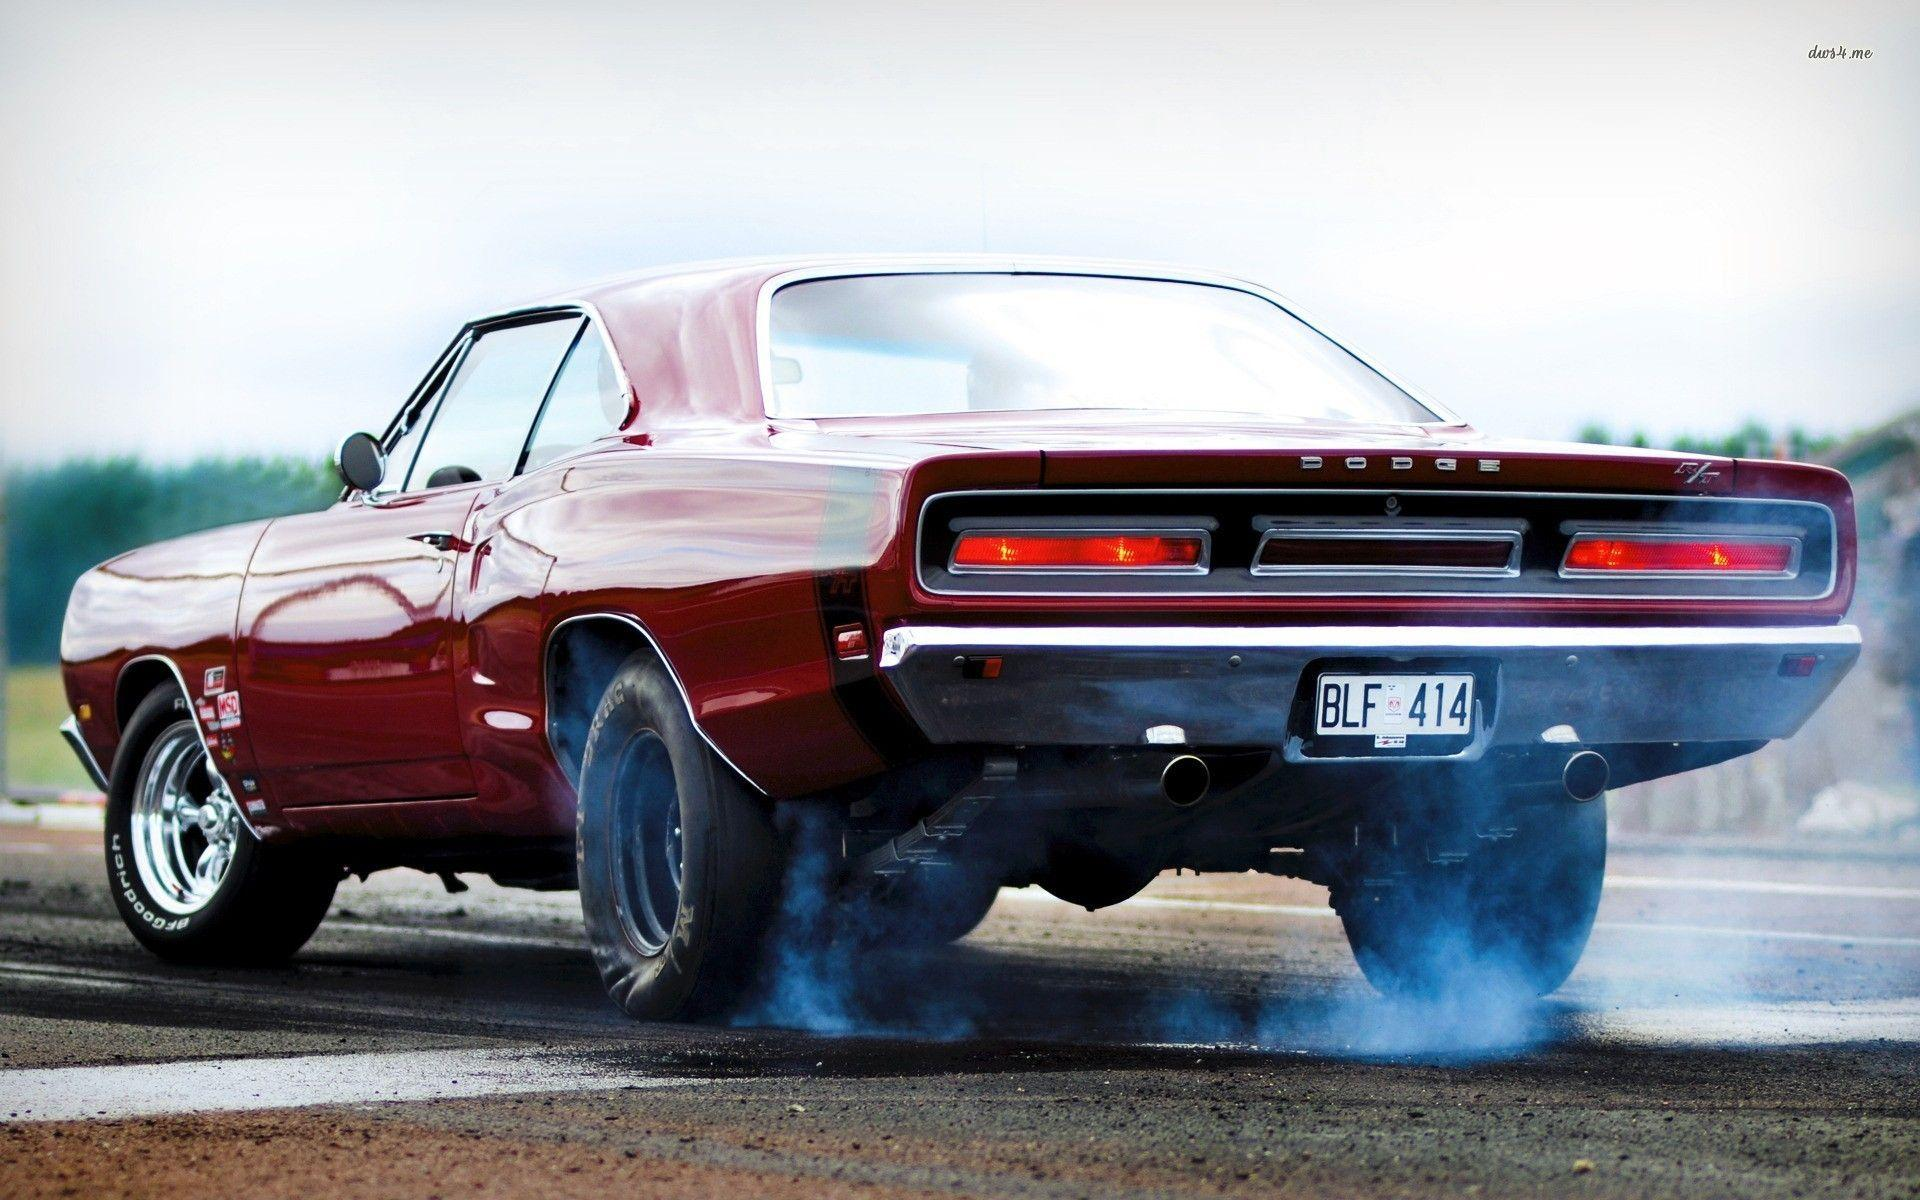 1969 Dodge Charger Daytona Wallpapers Wallpaper Cave